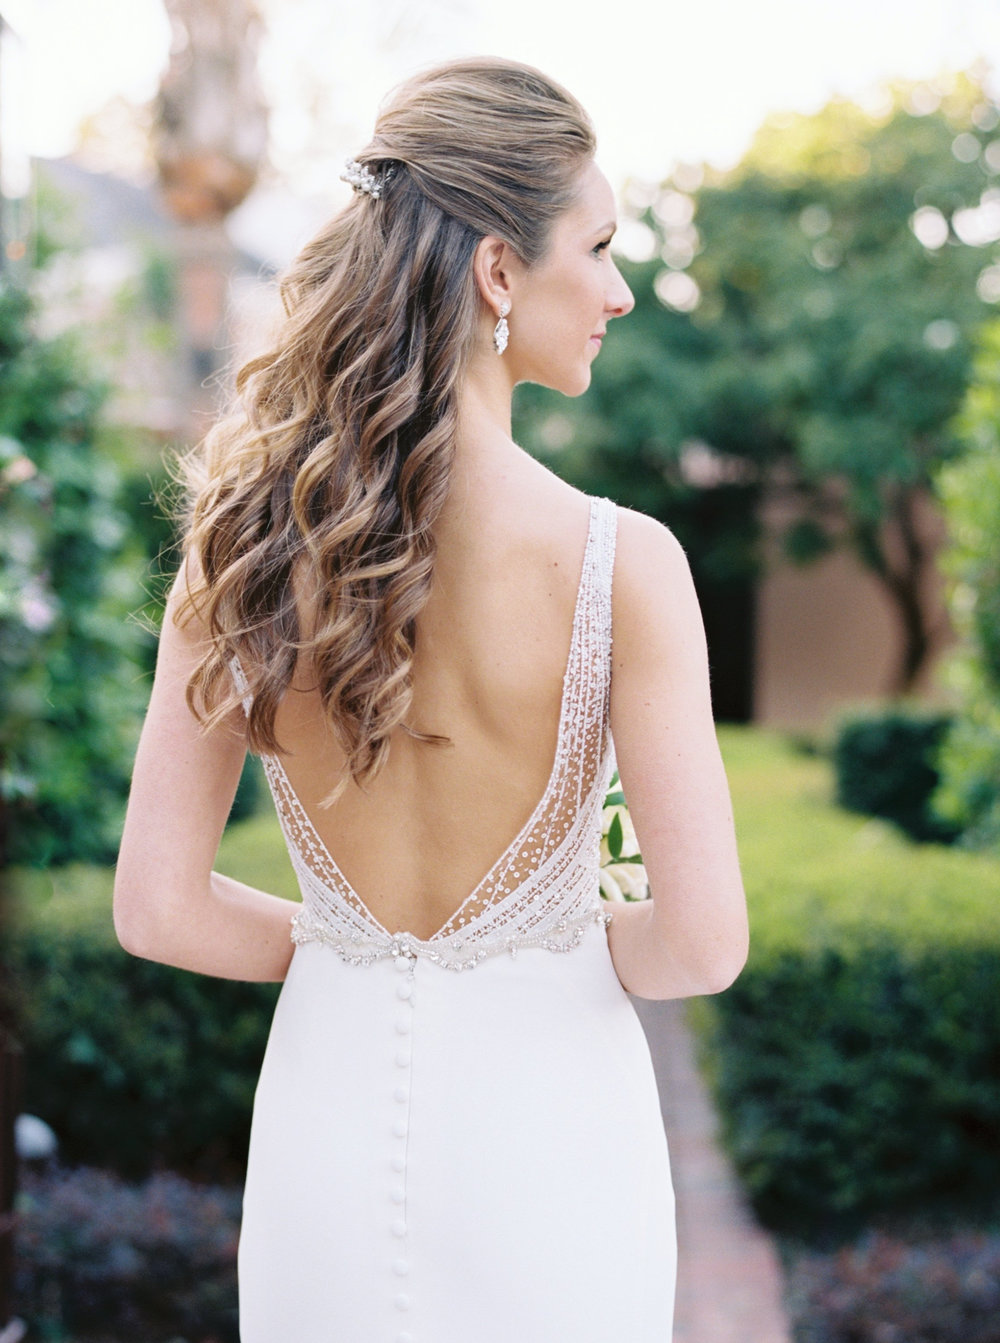 7-Half-Pulled-Back-Wedding-Hairstyles-bridal-hairstyle-jenna-mcelroy-2